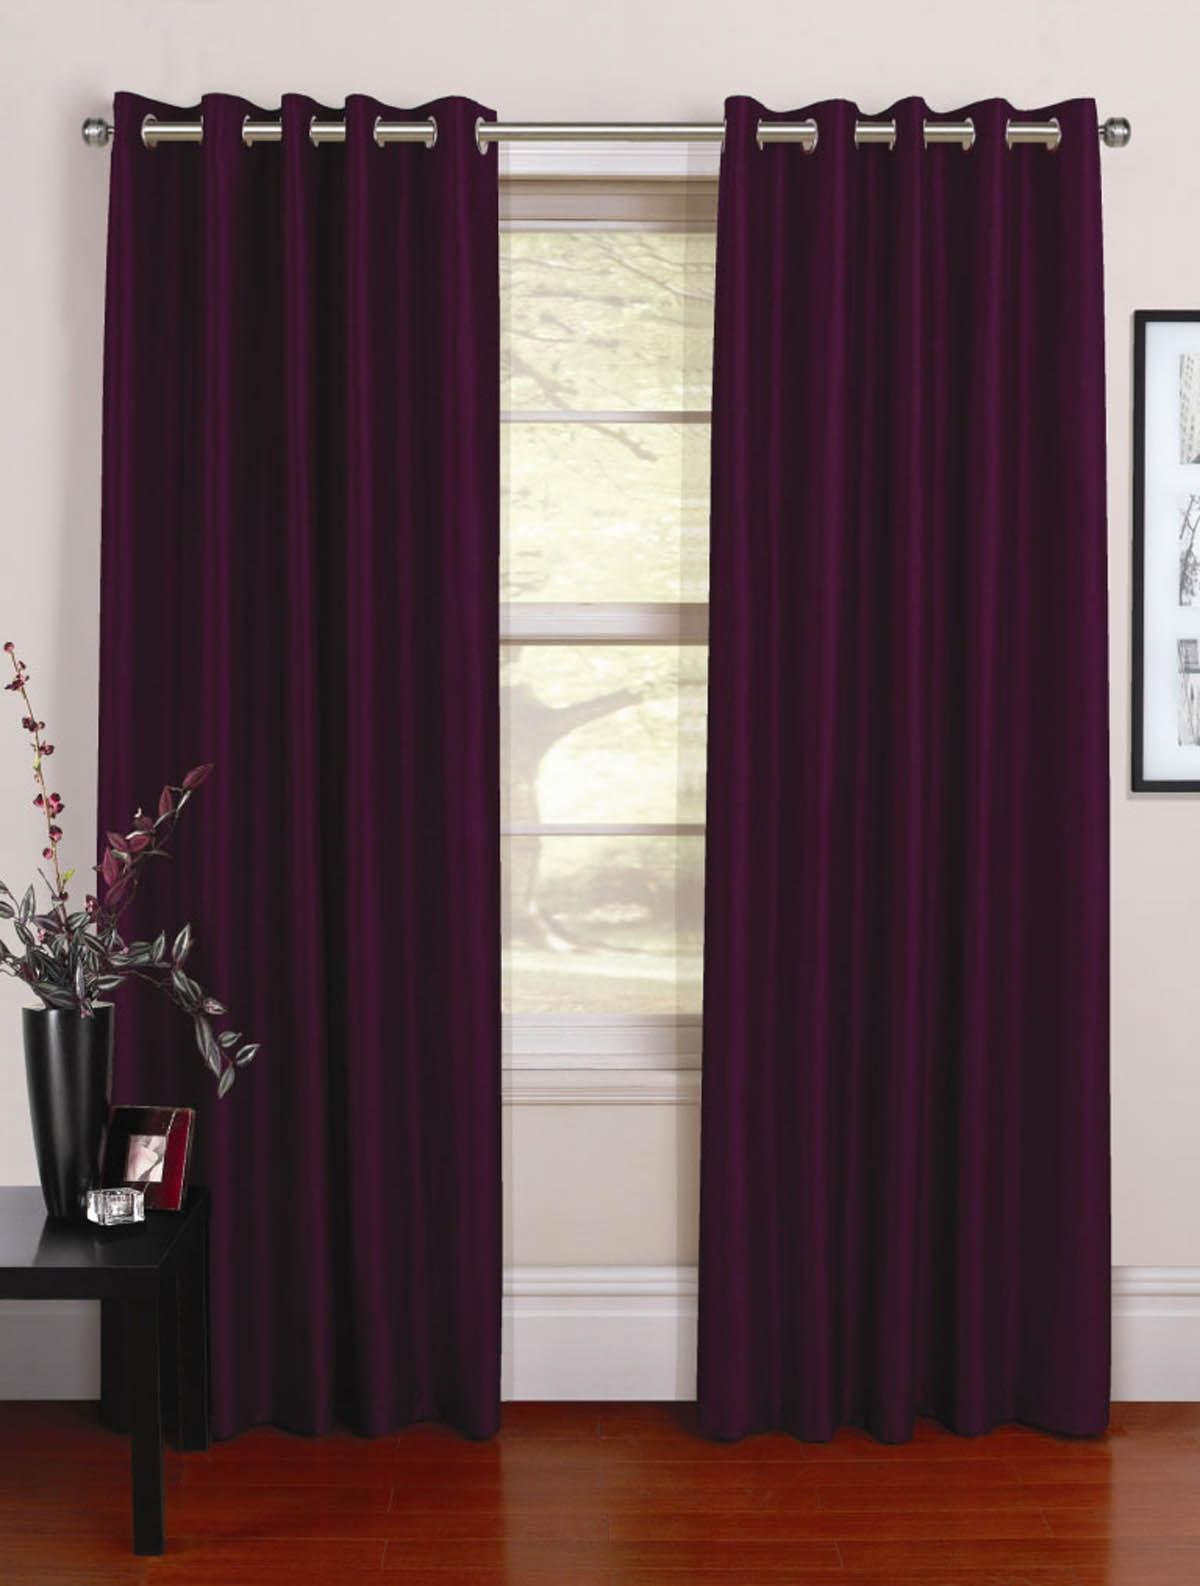 Grape Venezia Ready Made Eyelet Curtains